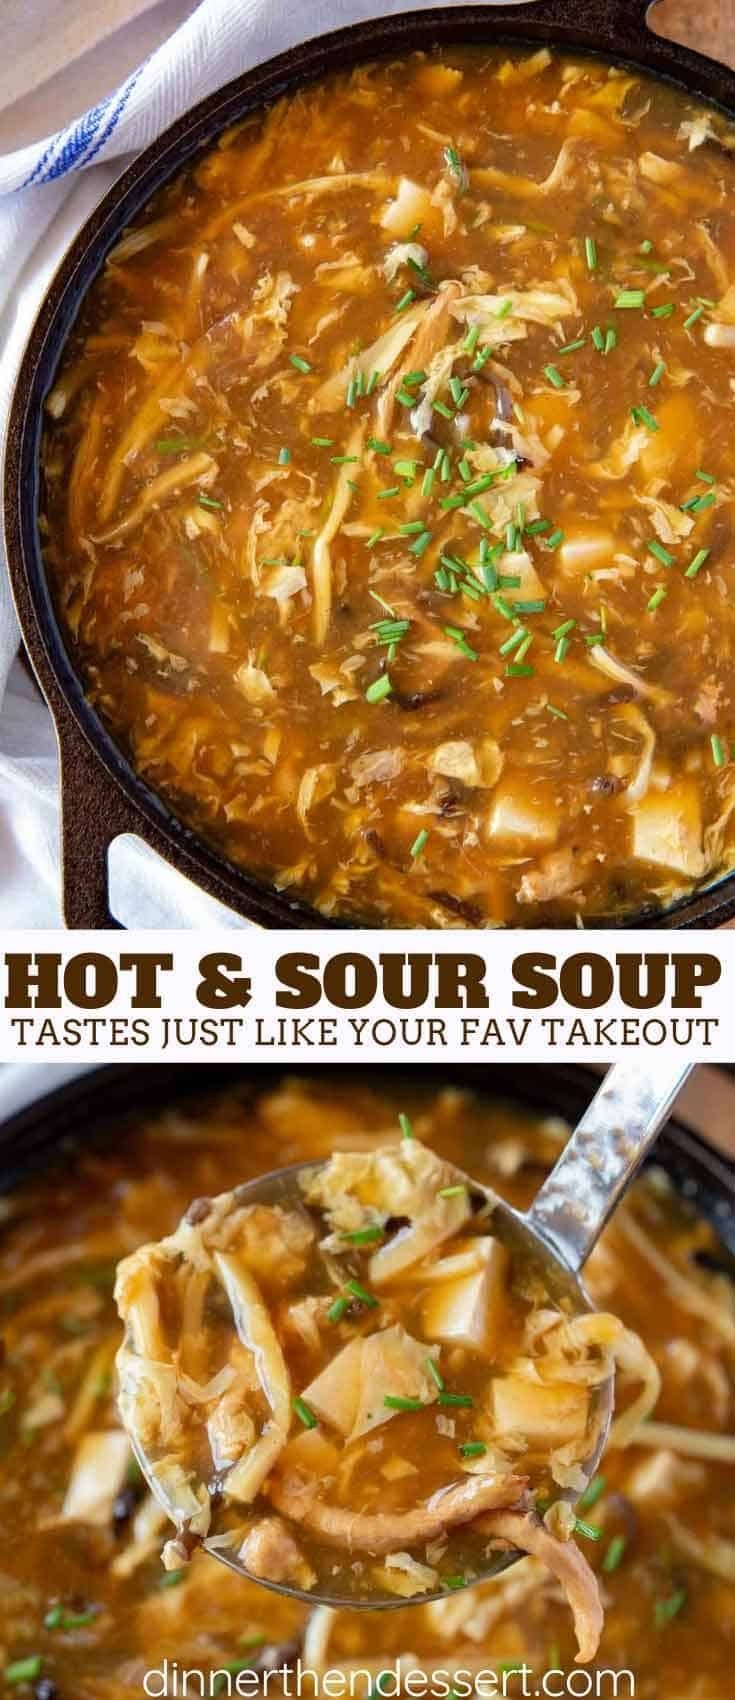 Hot and Sour Soup is the PERFECT combo of spicy and savory made with pork mushrooms bamboo shoots tofu and eggs in a savory seasoned broth with soy sauce and vinegar